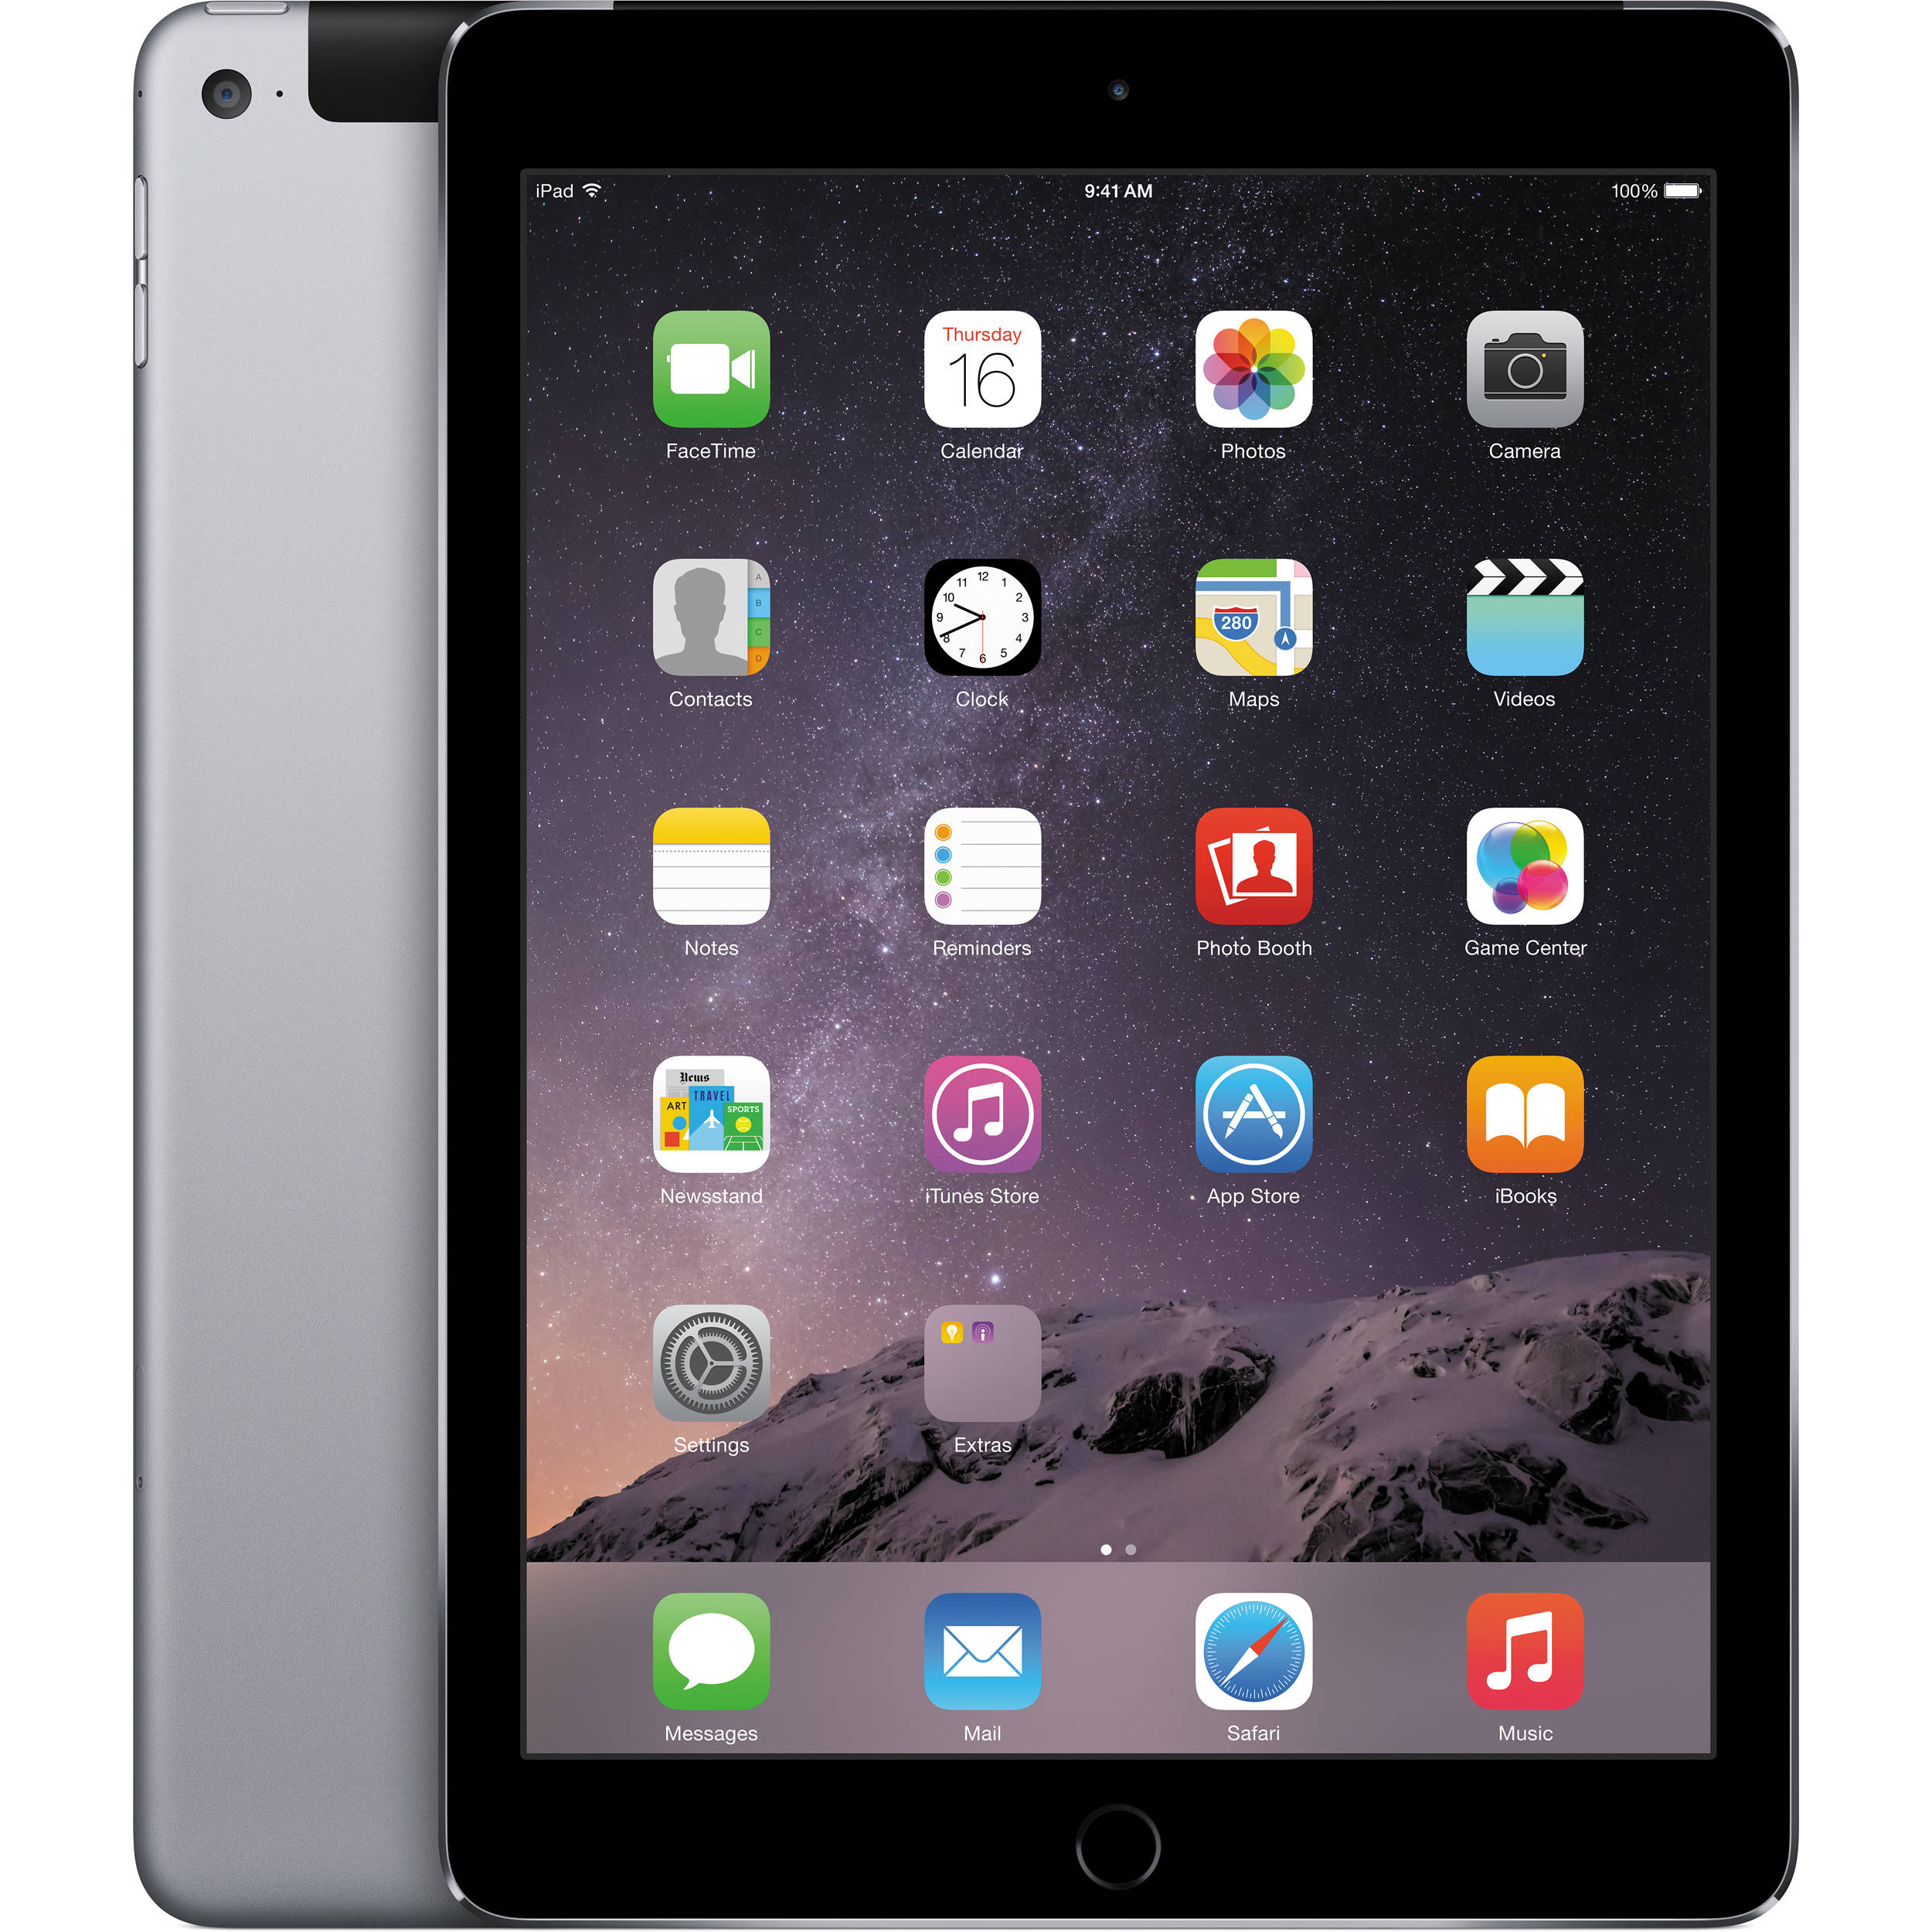 Apple iPad Mini 16GB WiFi MD528BA A1432 Cheap laptops